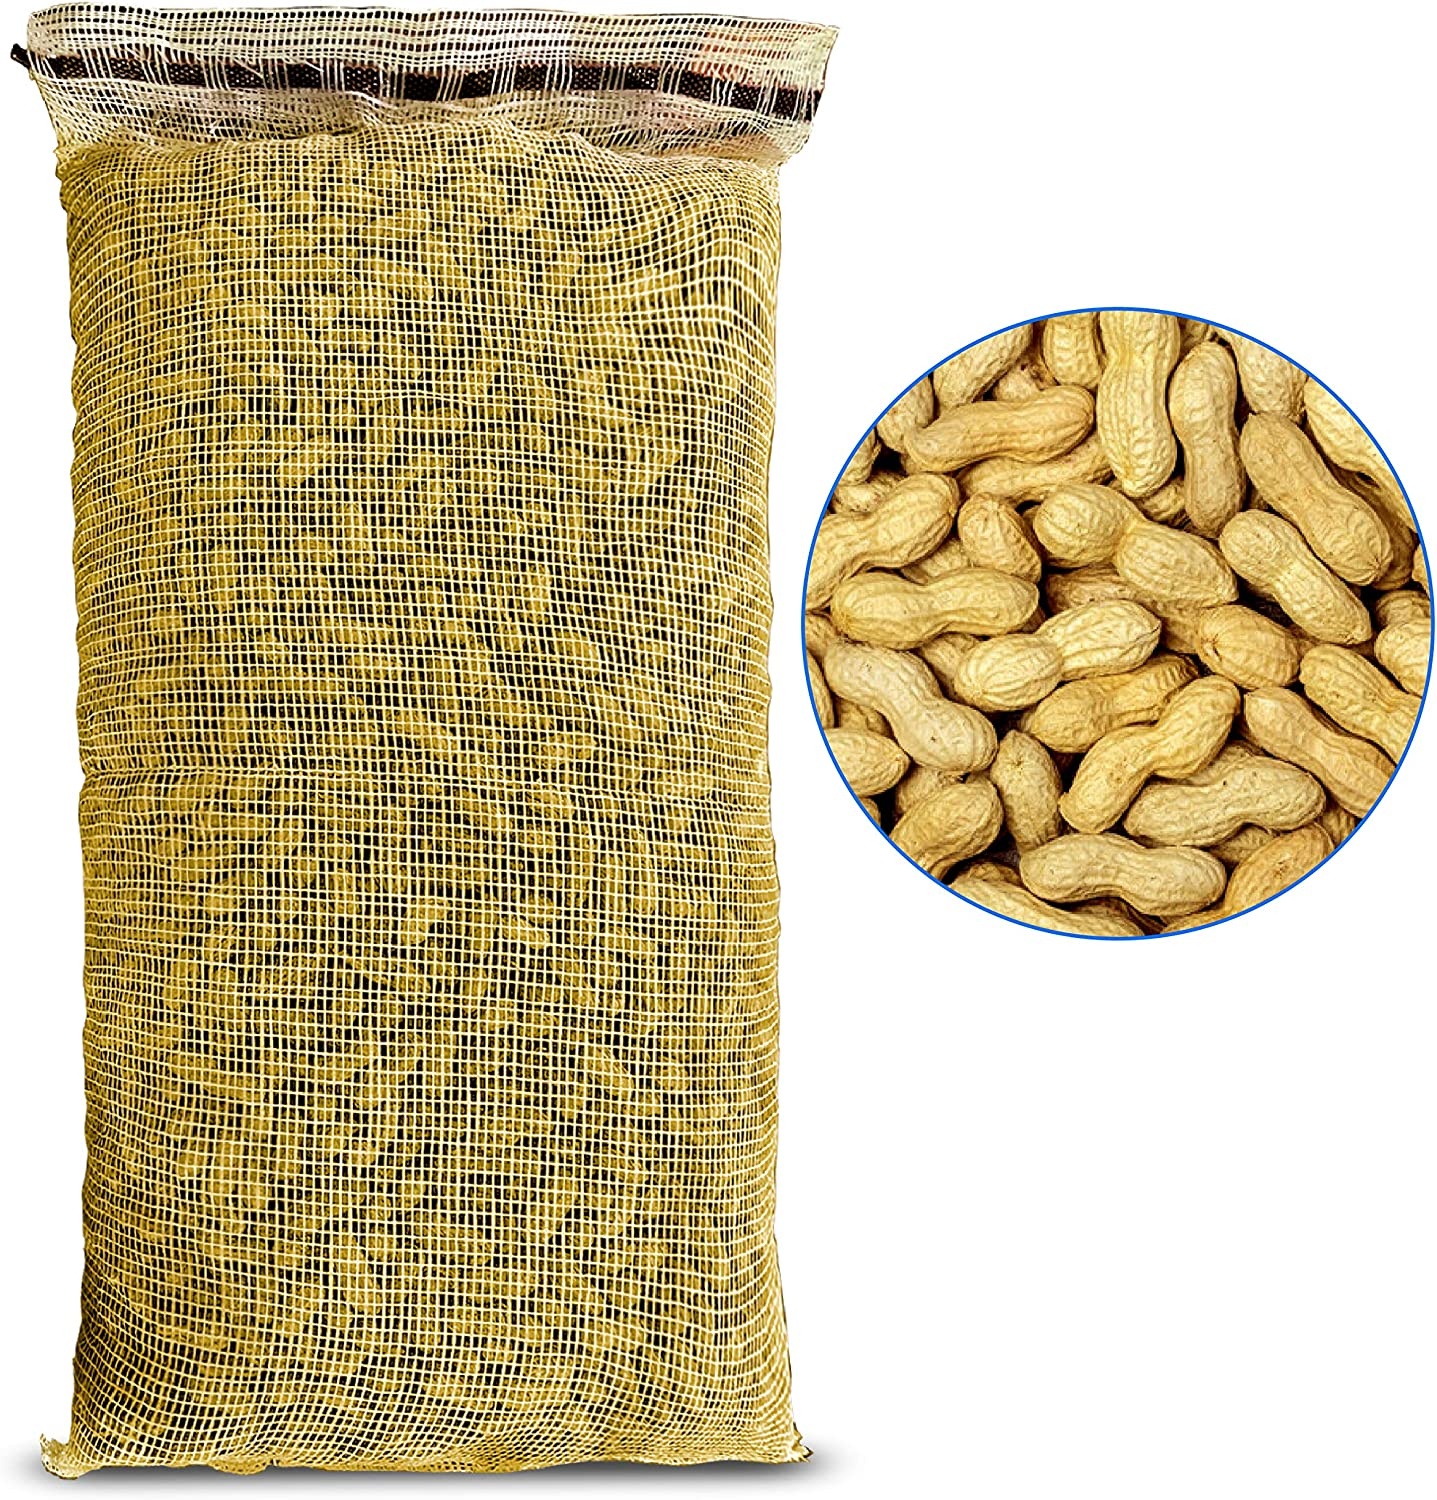 EasyGo Products 25lb Bag Pound Bag Animal Peanuts in-Shell. Peanuts for Squirrels, Birds, Deer, Pigs and A Wide Variety of Wildlife. Raw and Unsalted and Great for Parrots, Woodpeckers and Cardinals.